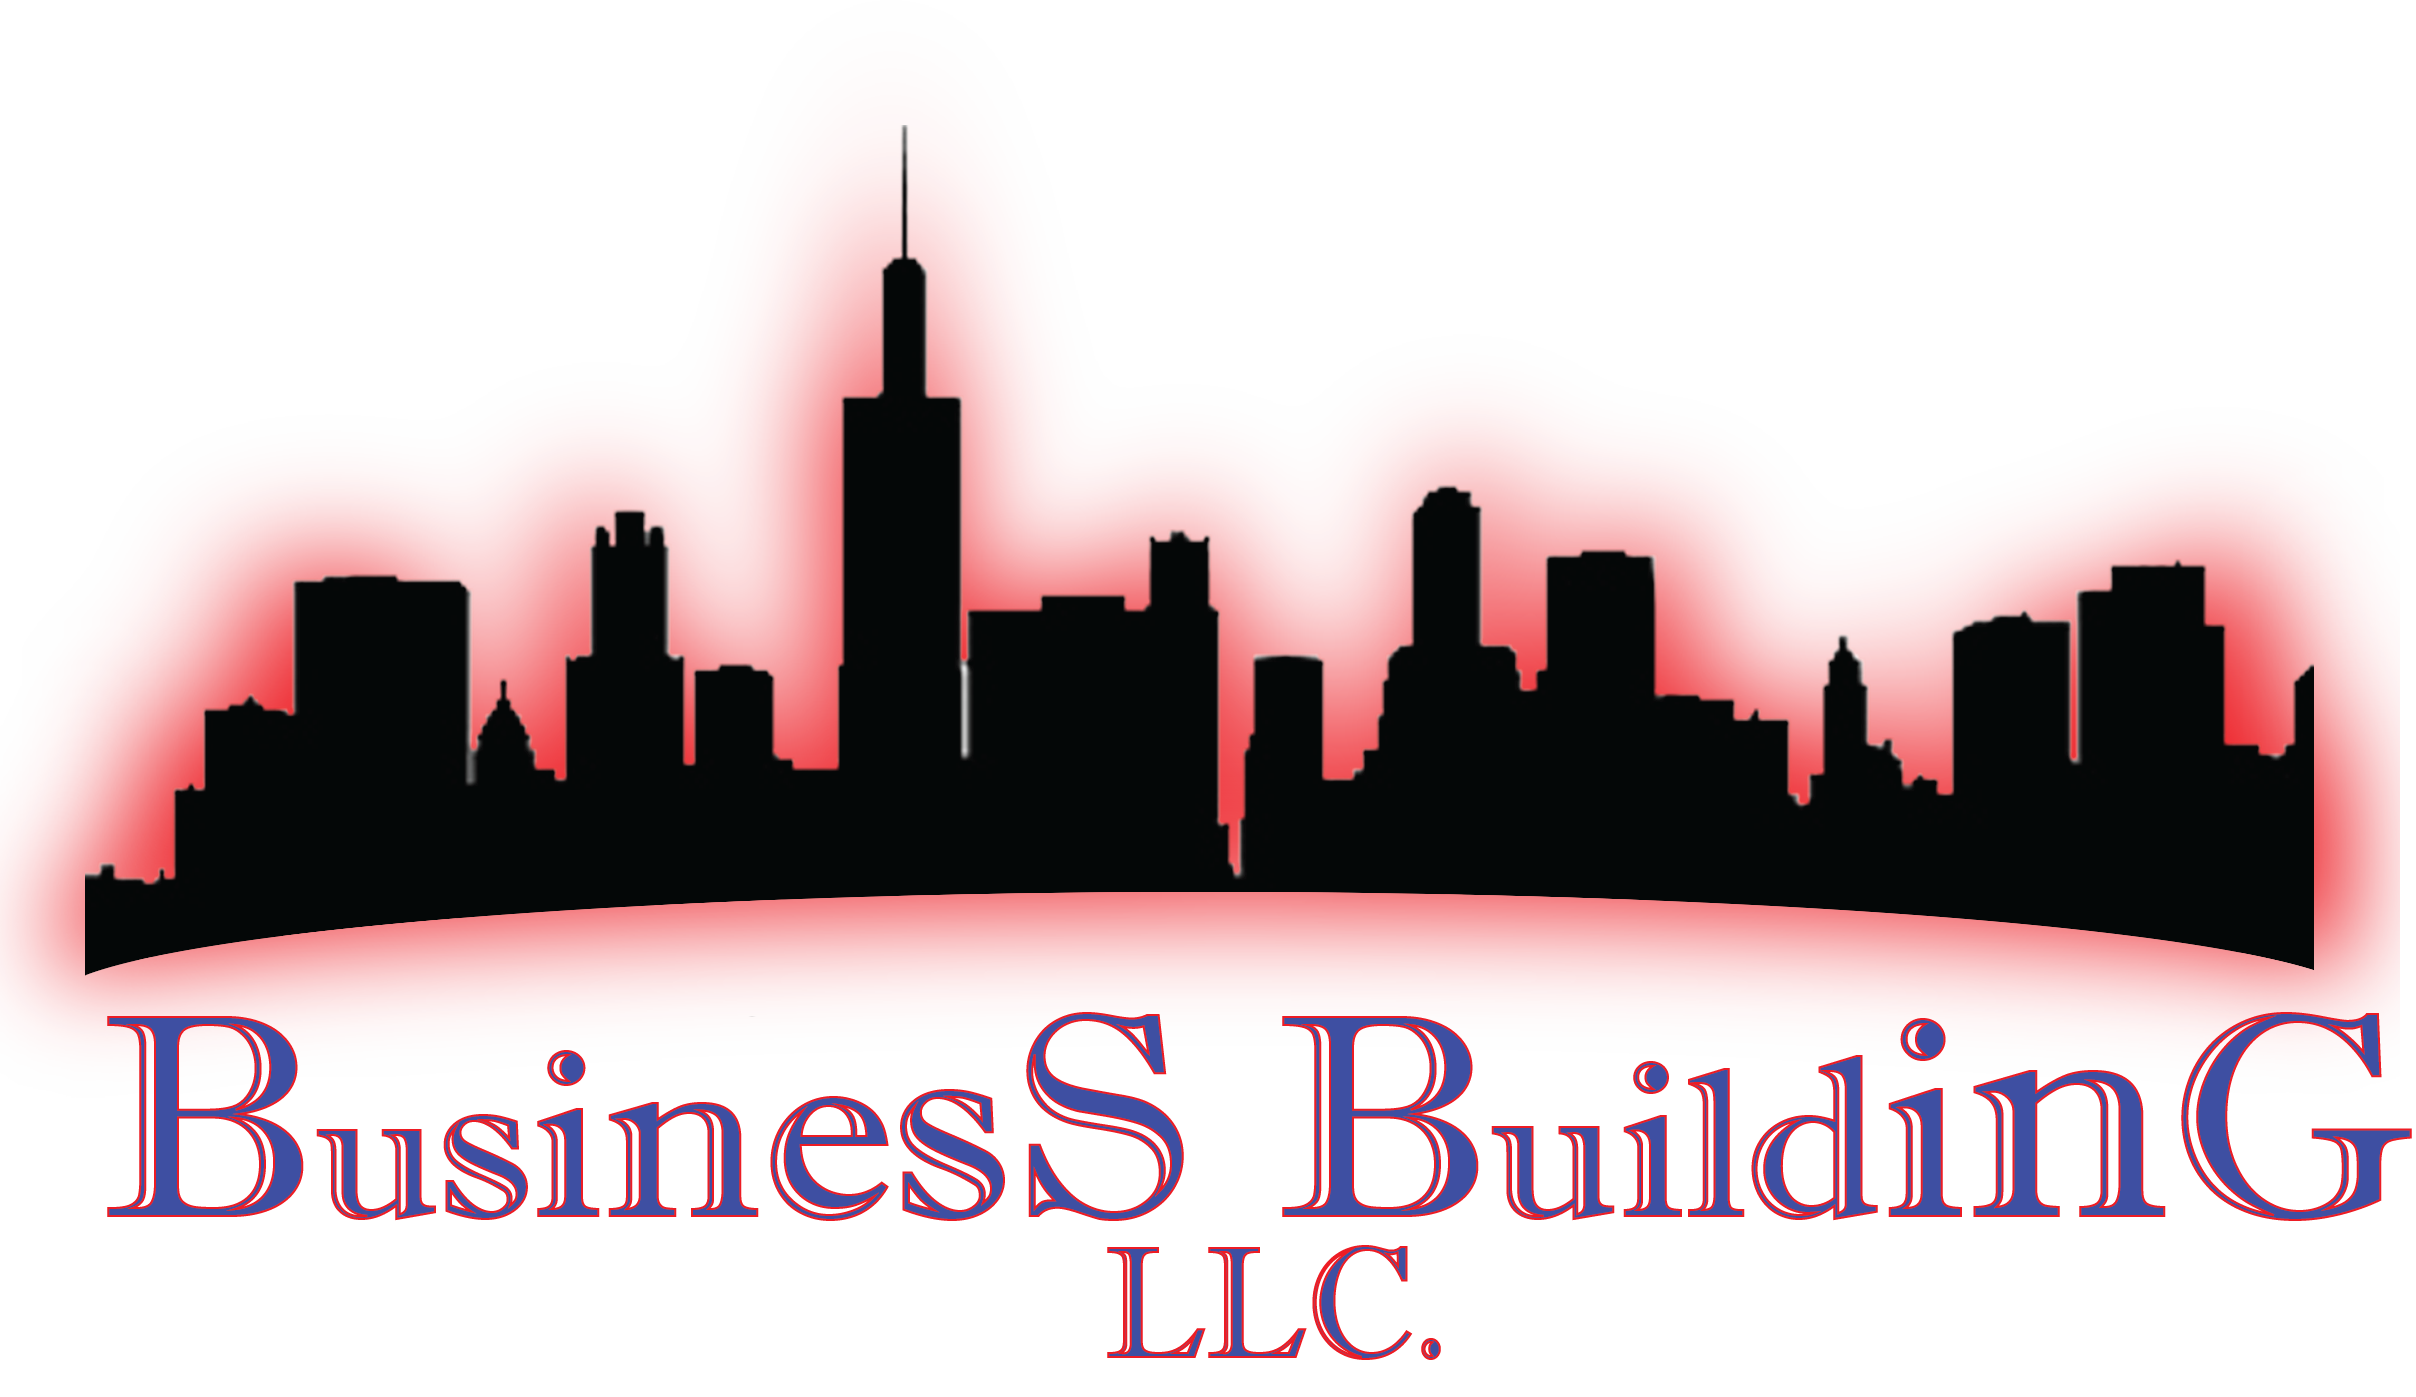 Resume Building Services resume building service customer service manager resume examples within resume building Resume Building Business Building Services Resume Building Business Building Services